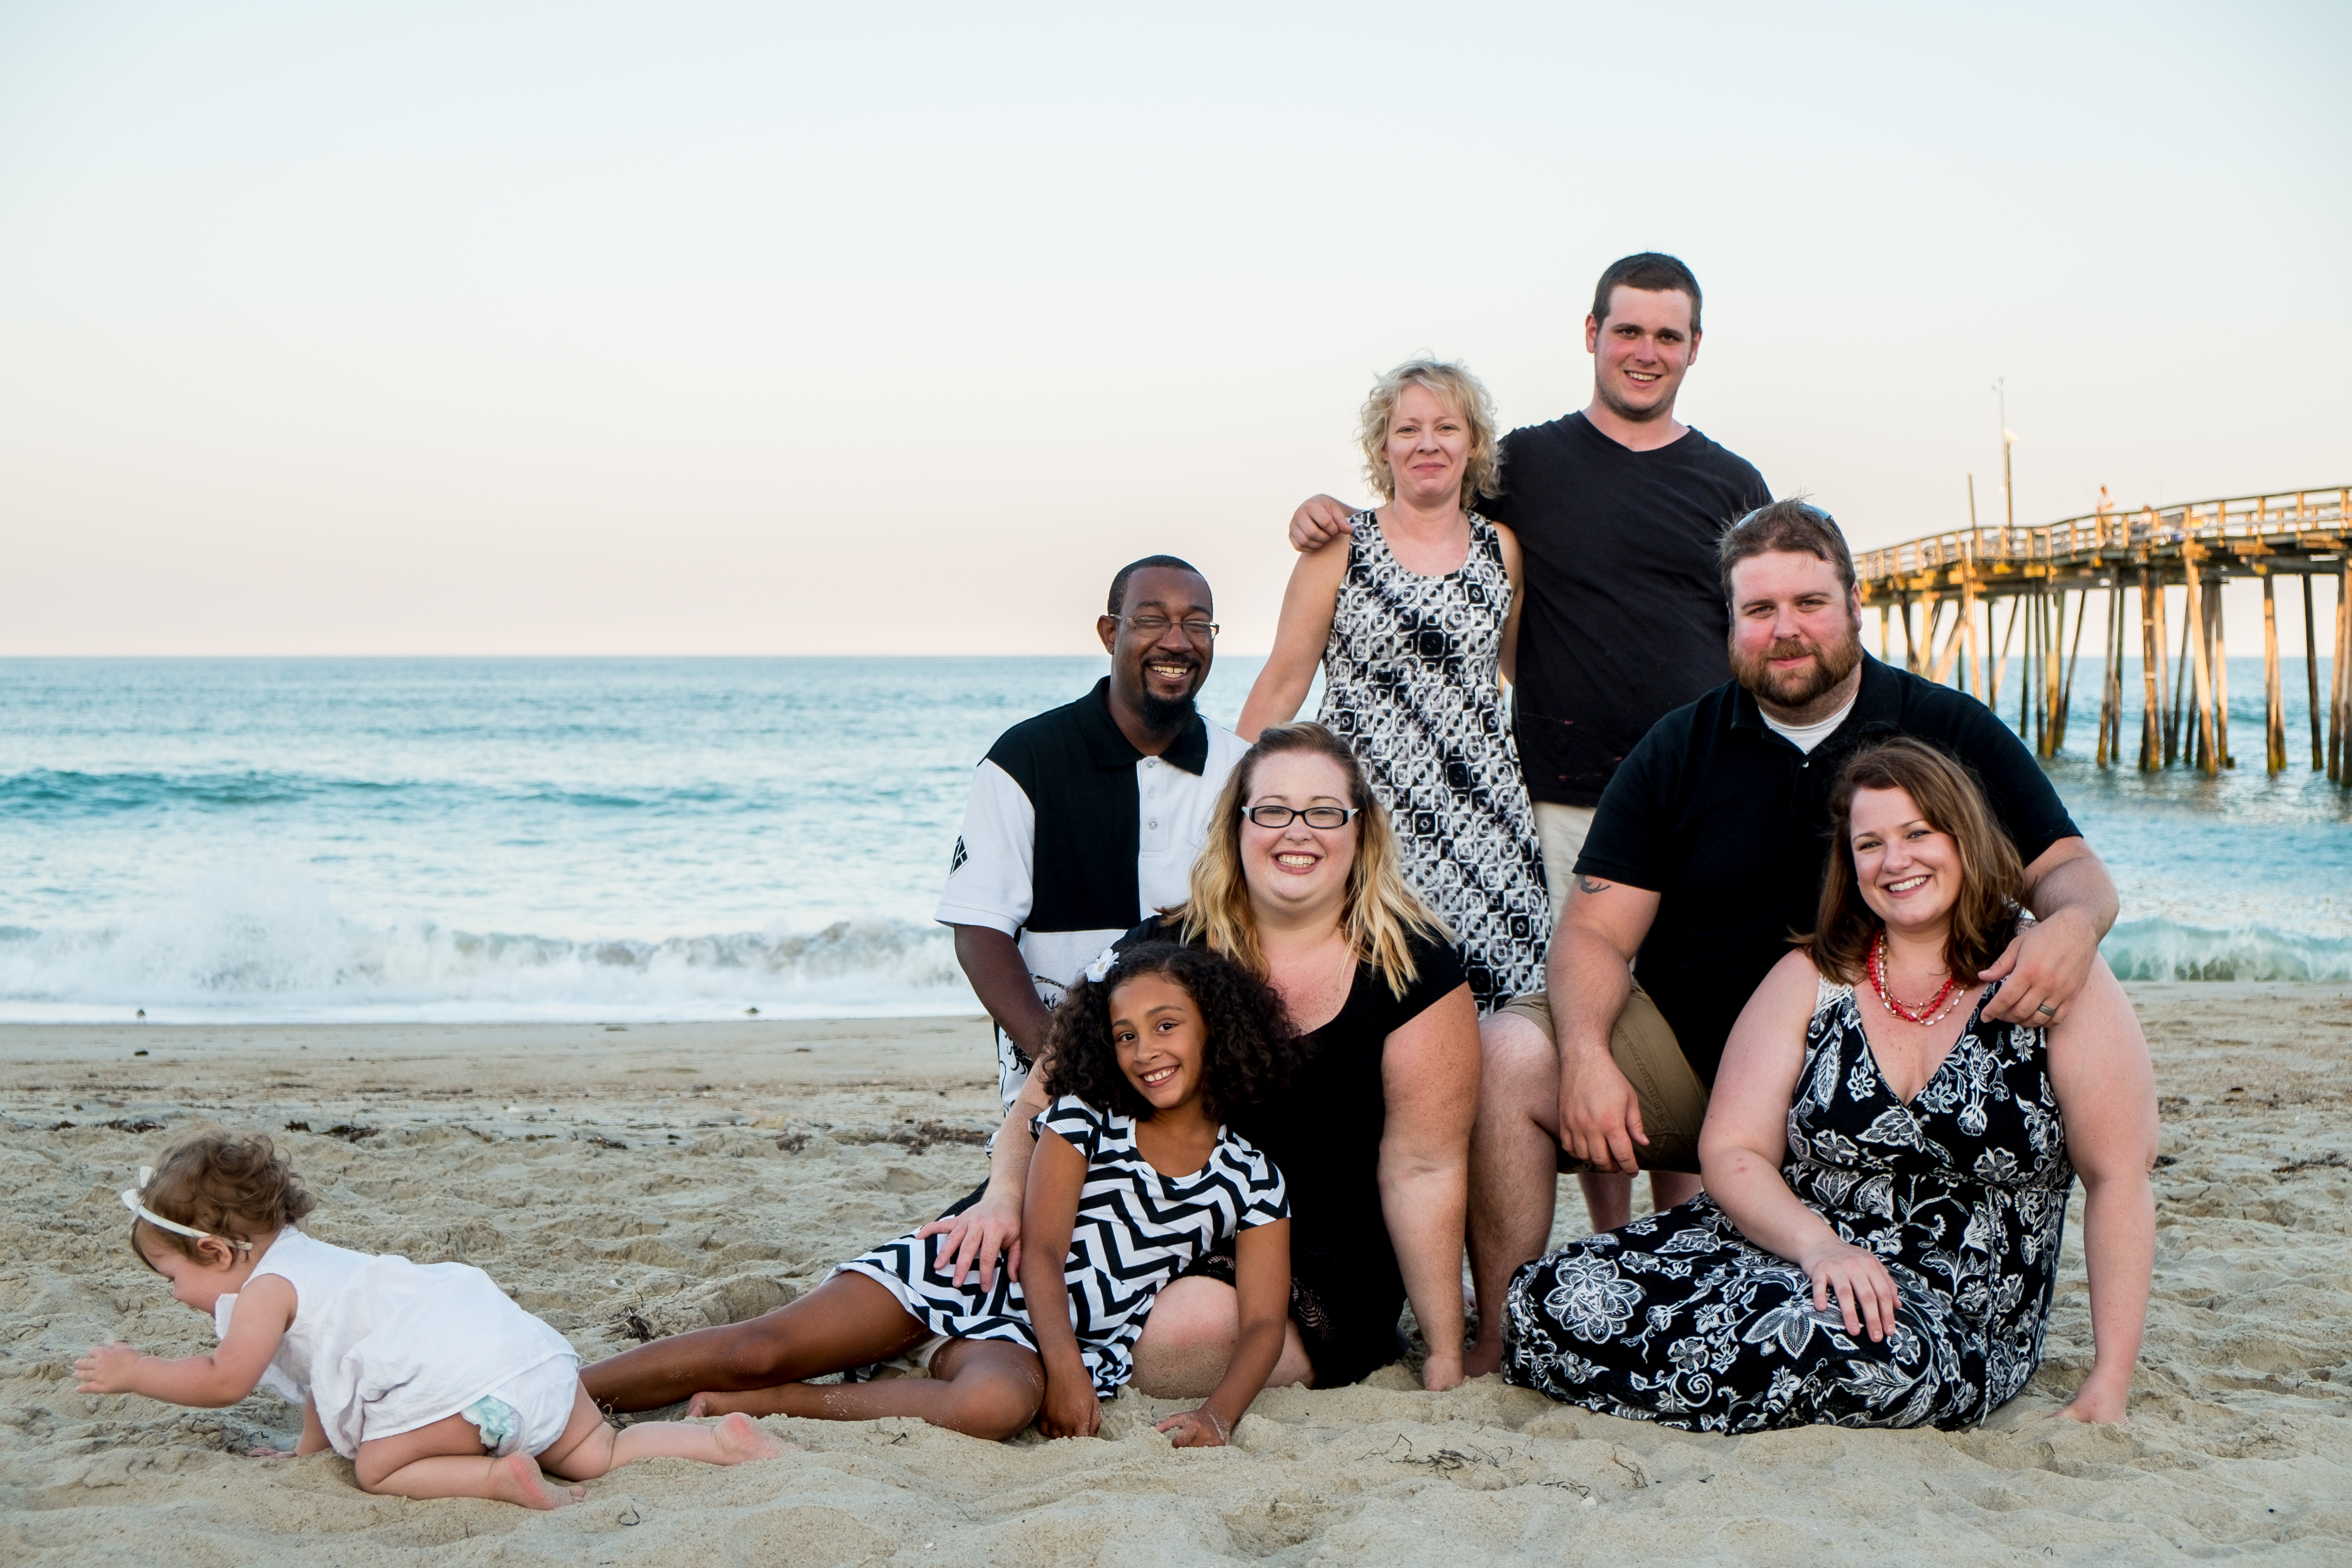 A family photo taken at Cape Hatteras, NC.